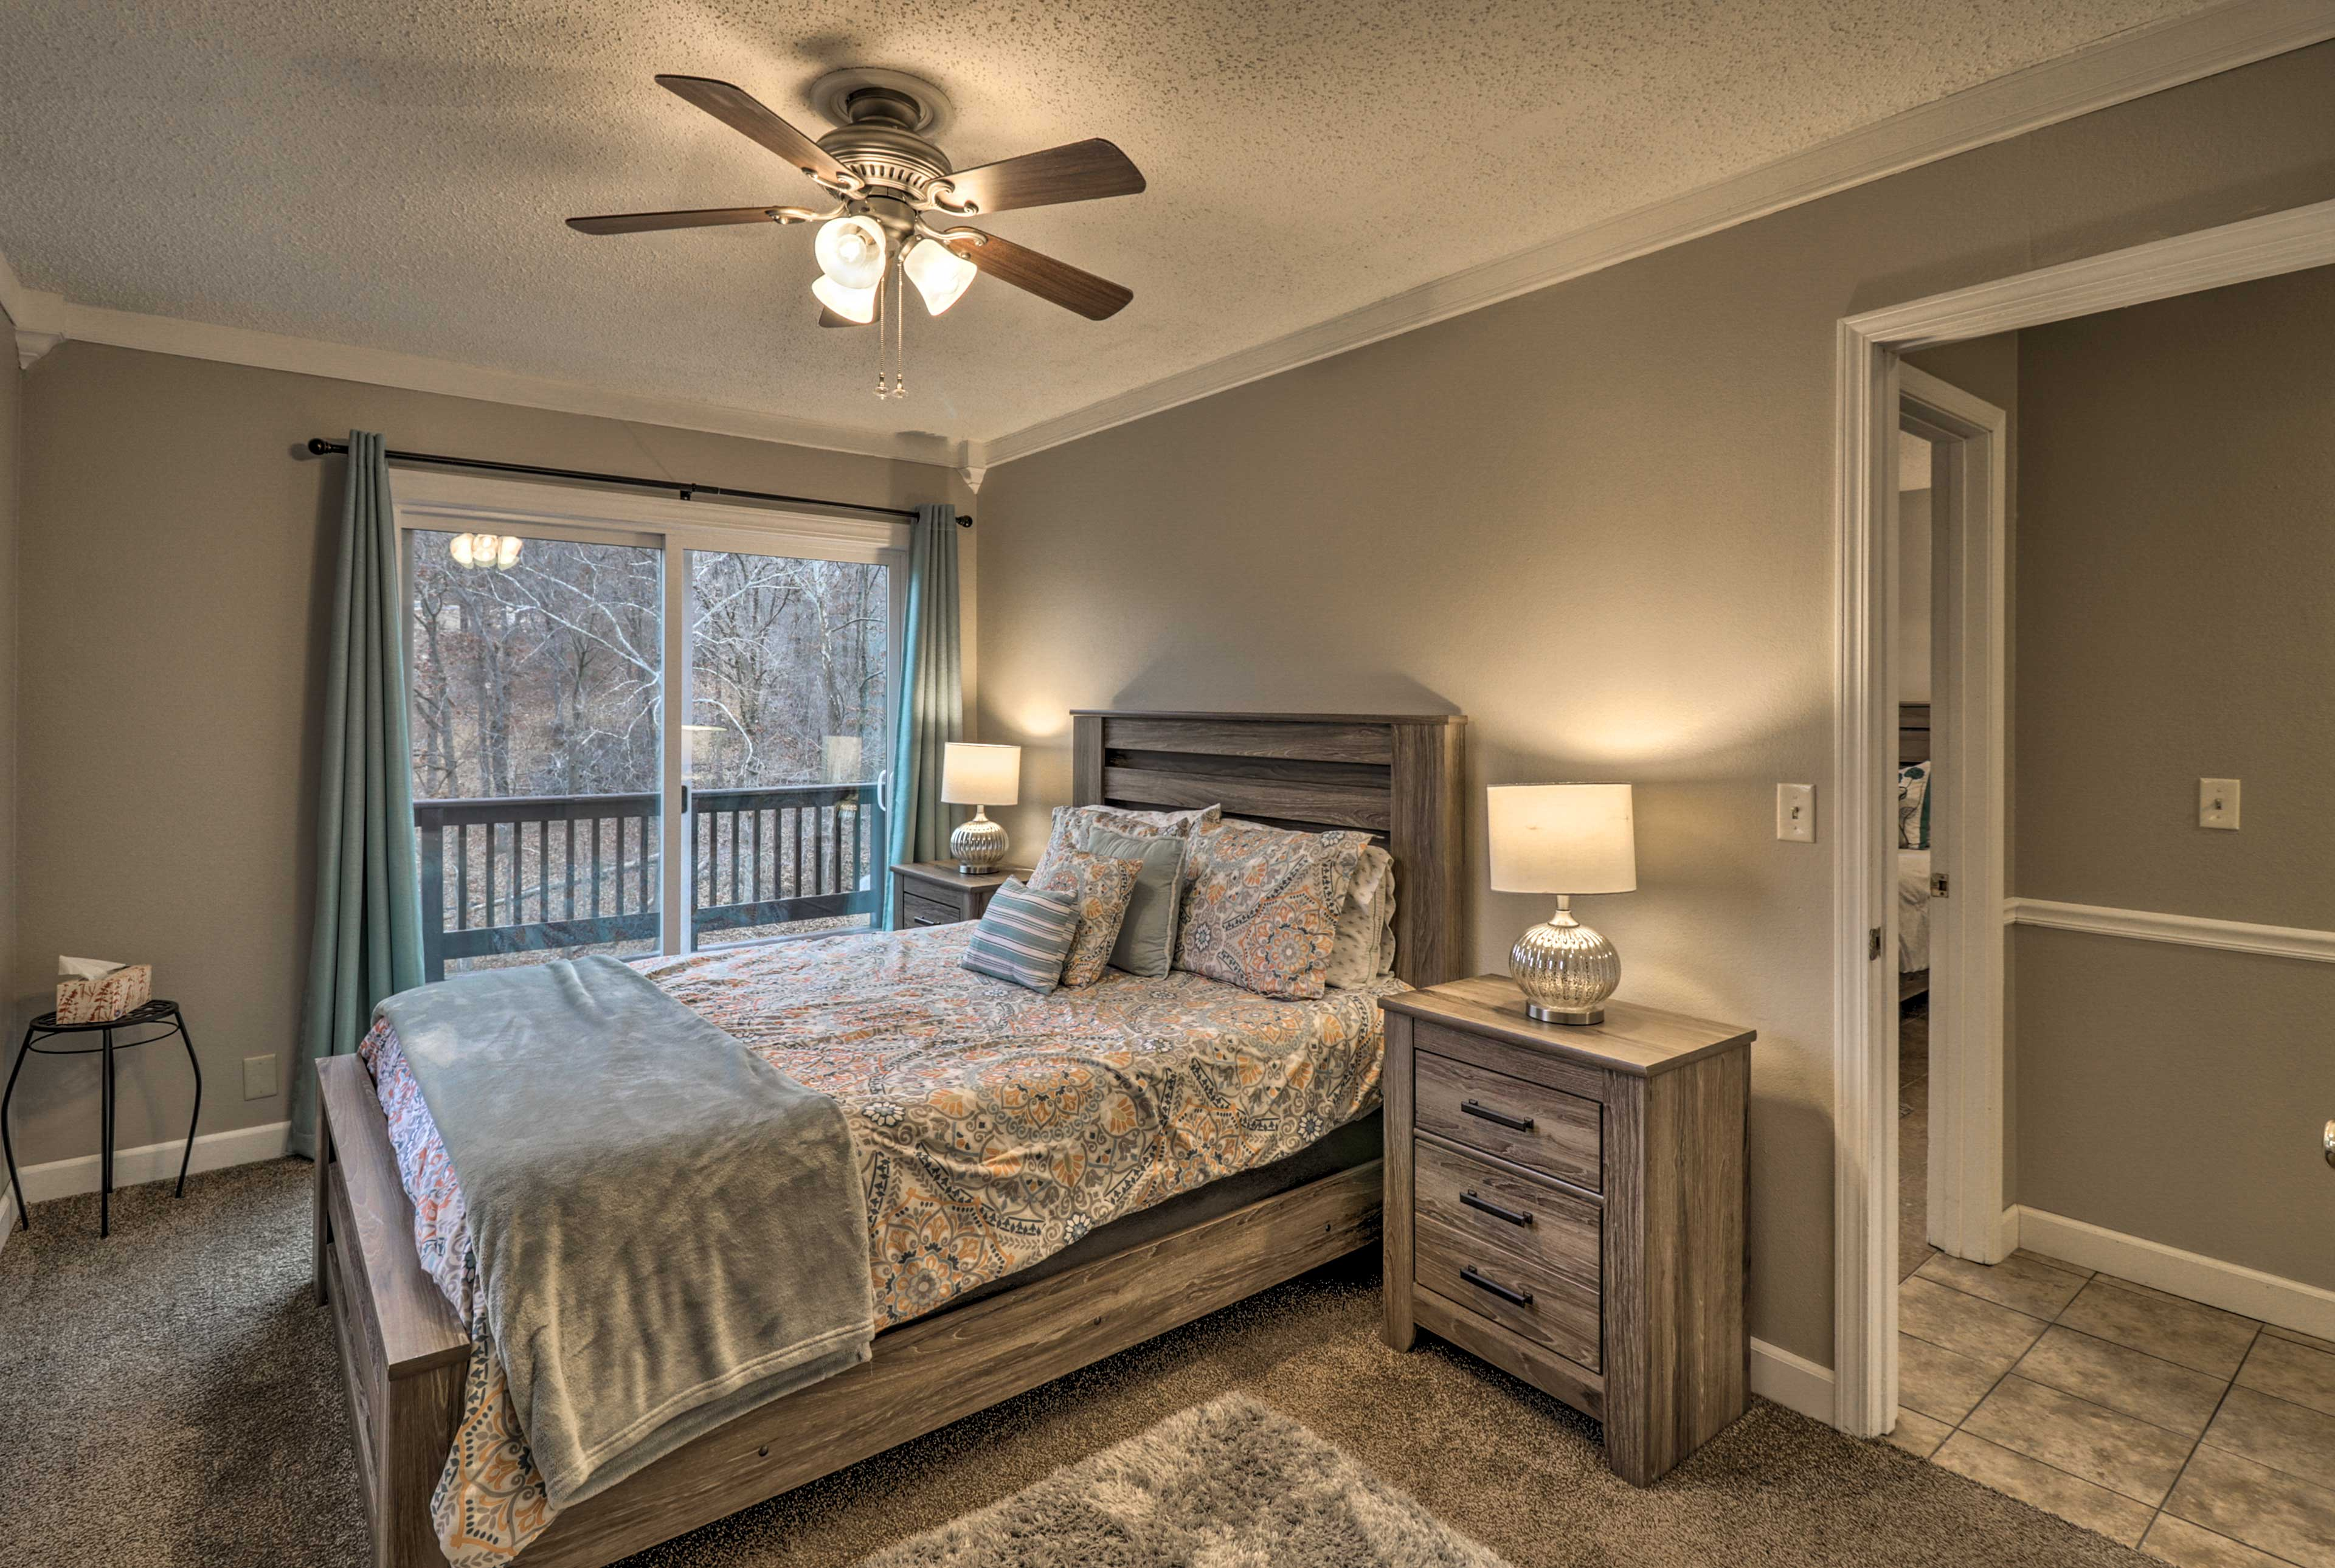 Rest your head after an exciting day in this comfy queen bed.